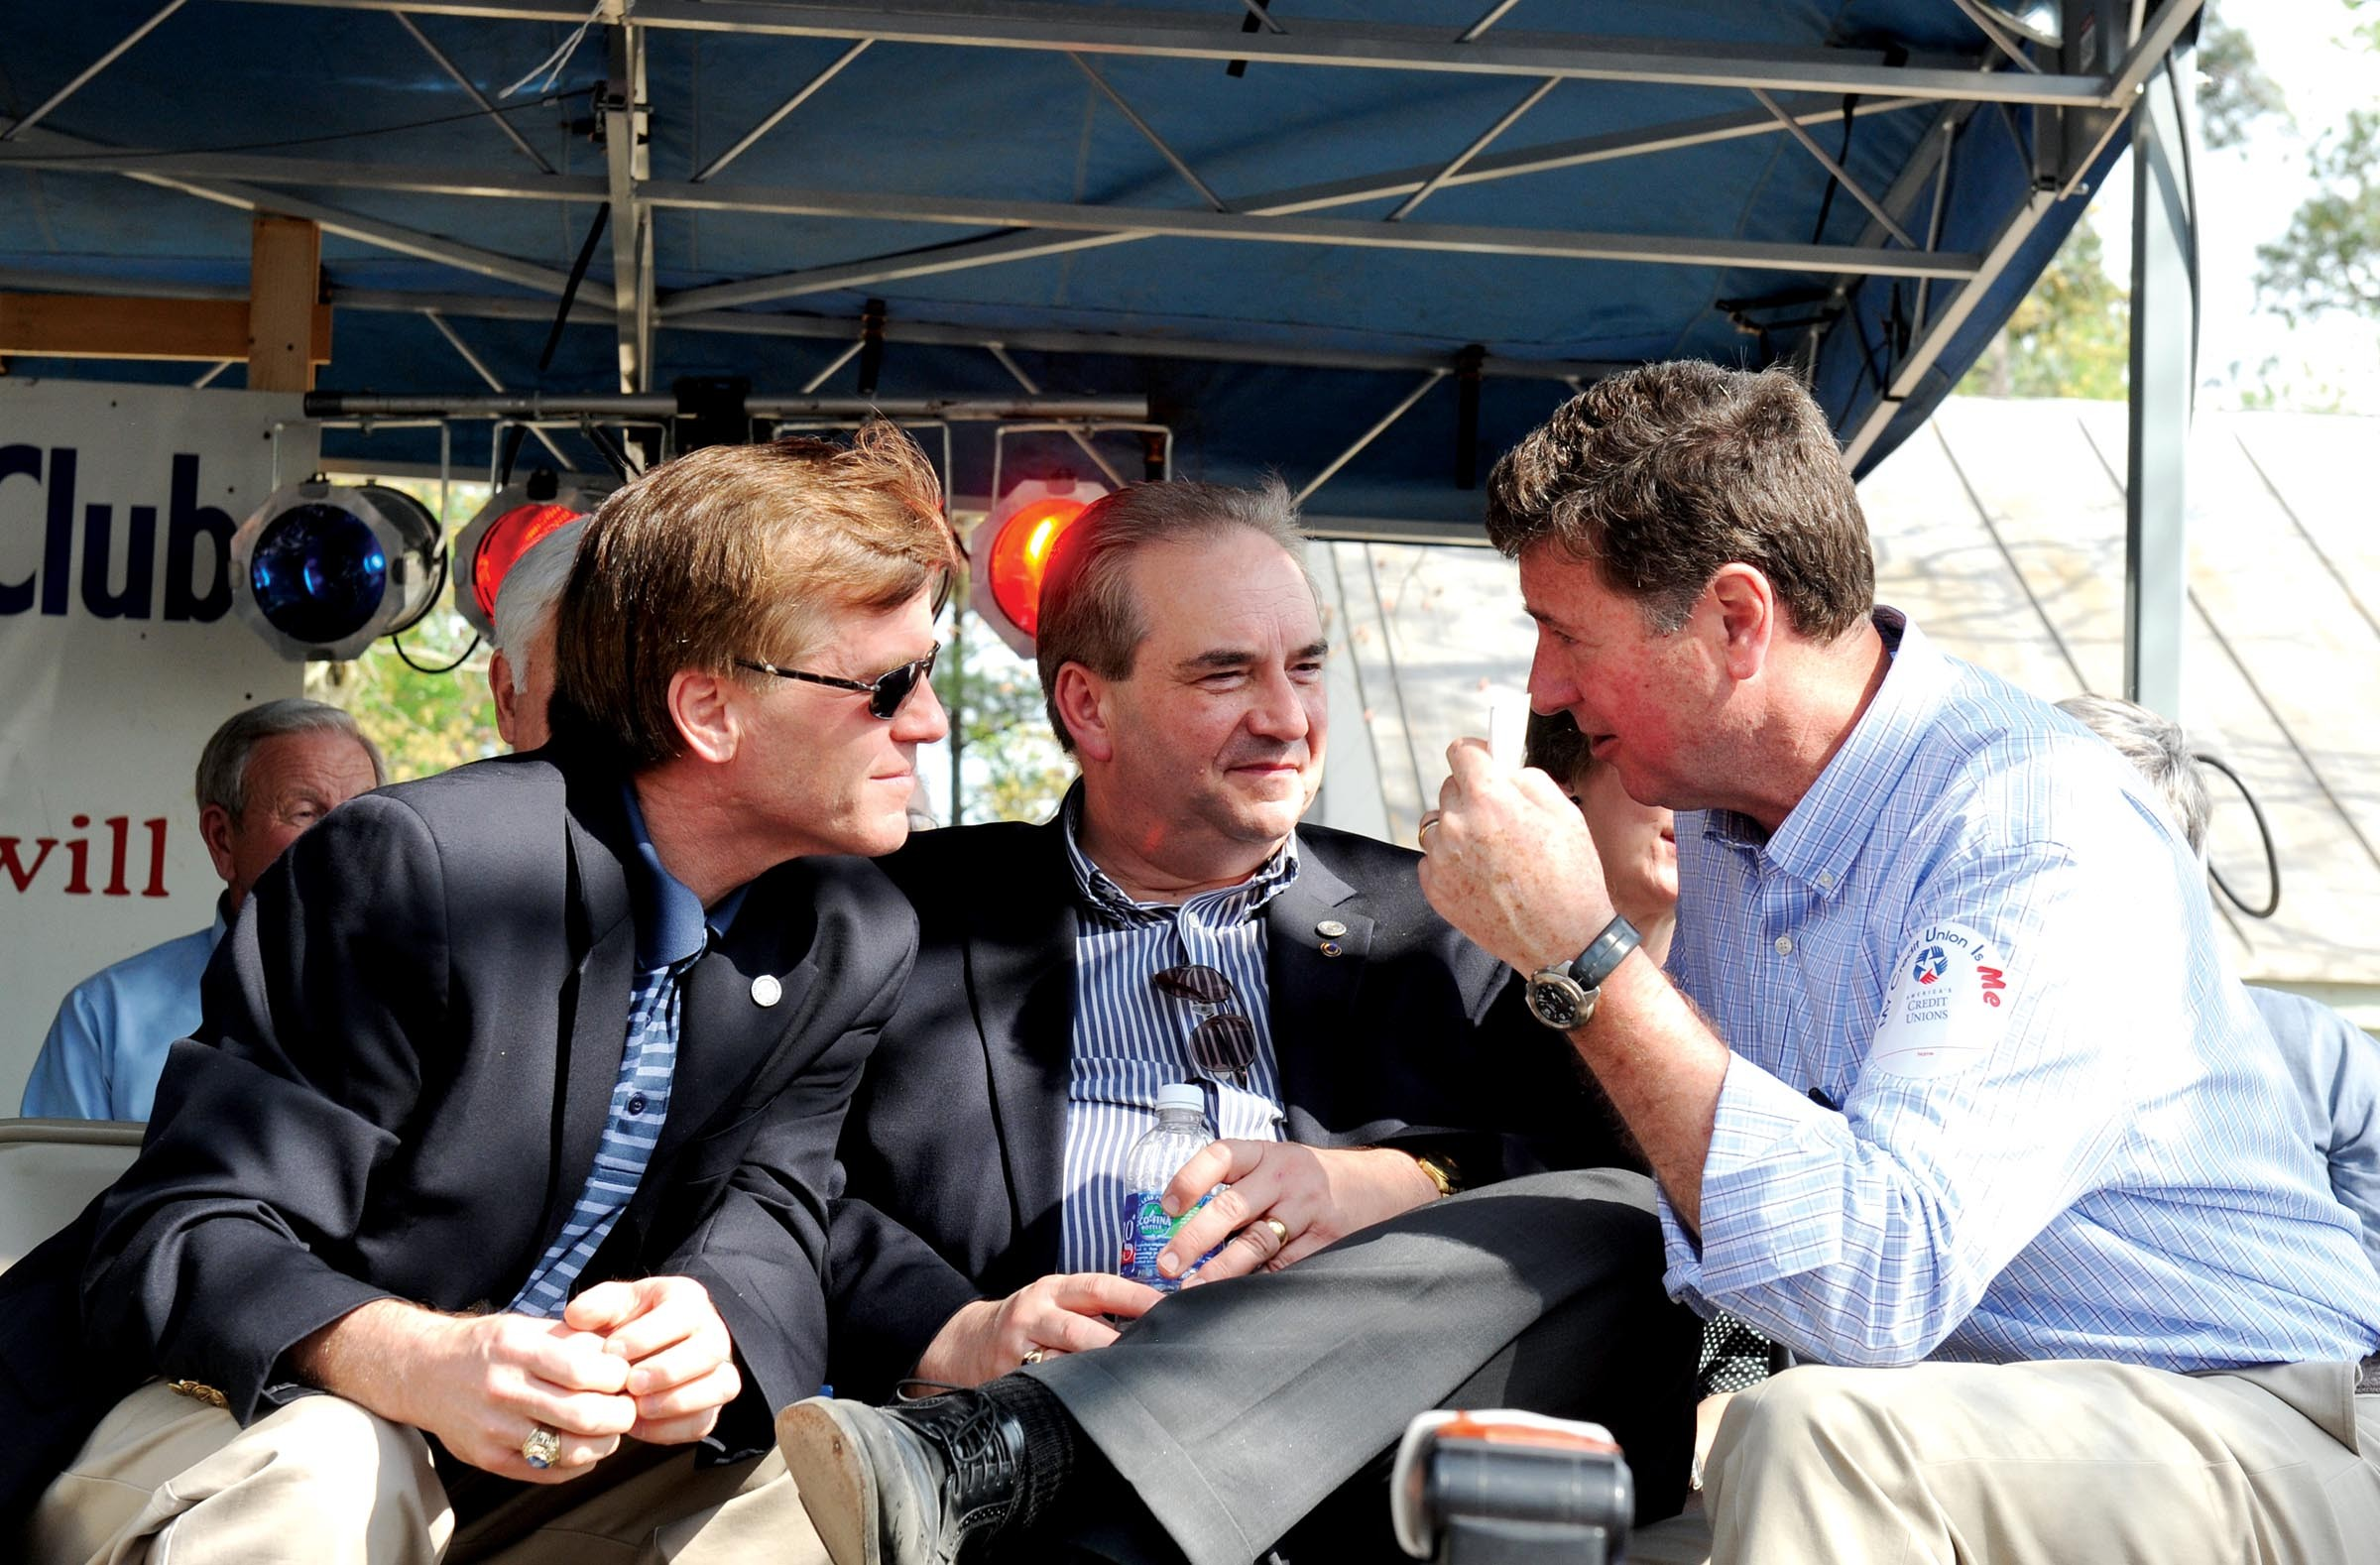 Gov. Bob McDonnell and George Allen, a former governor and U.S. senator, share a moment at the Shad Planking. - SCOTT ELMQUIST